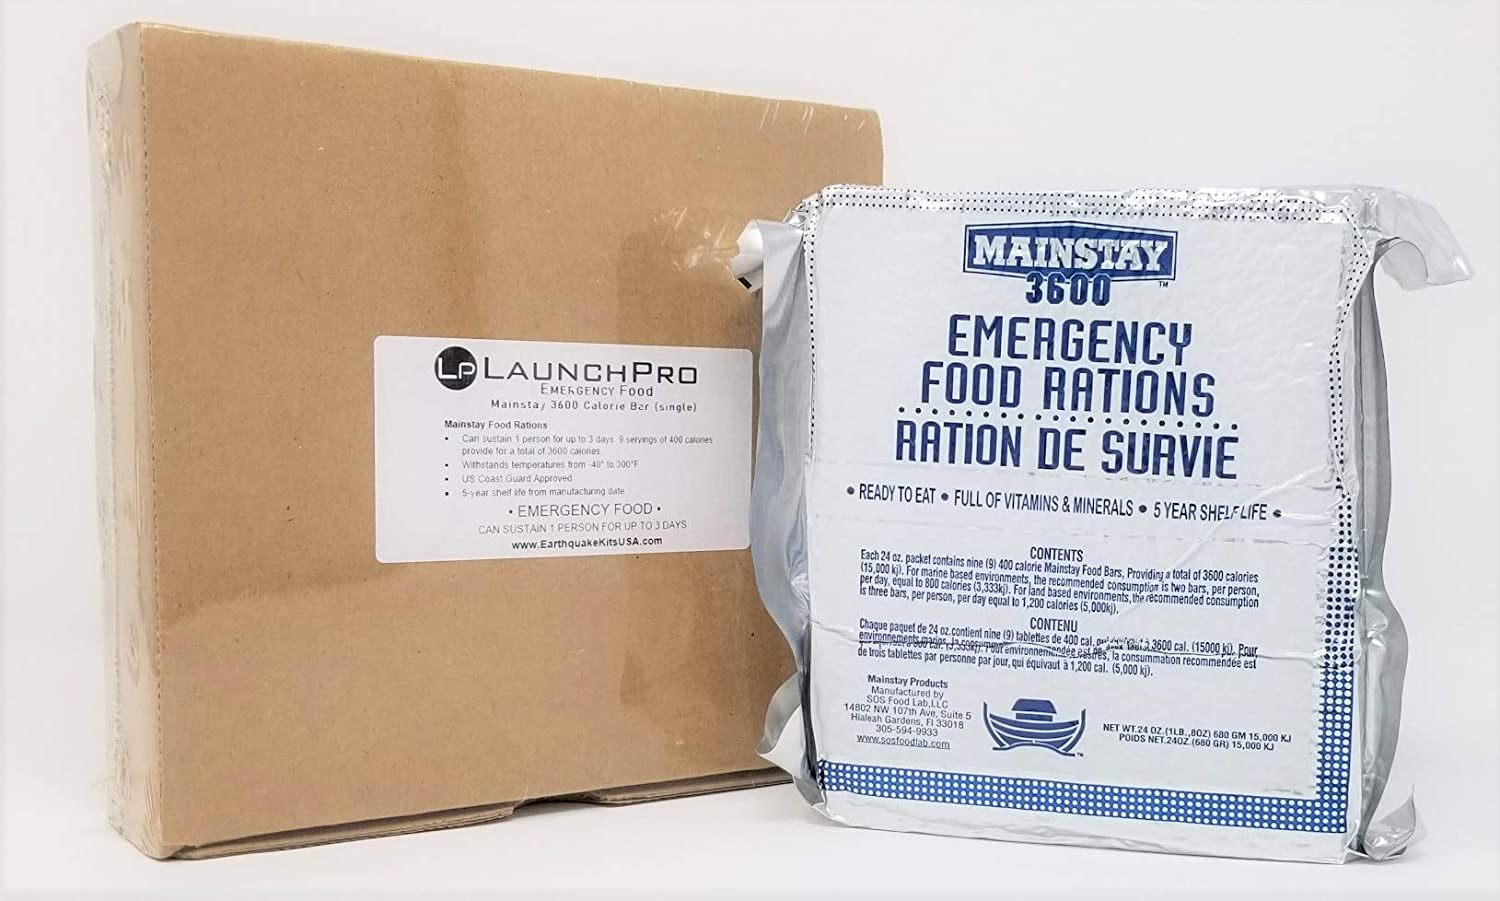 LaunchPro Emergency Food Rations 3600 Calorie Food Bars. OnePack (Single Pack)